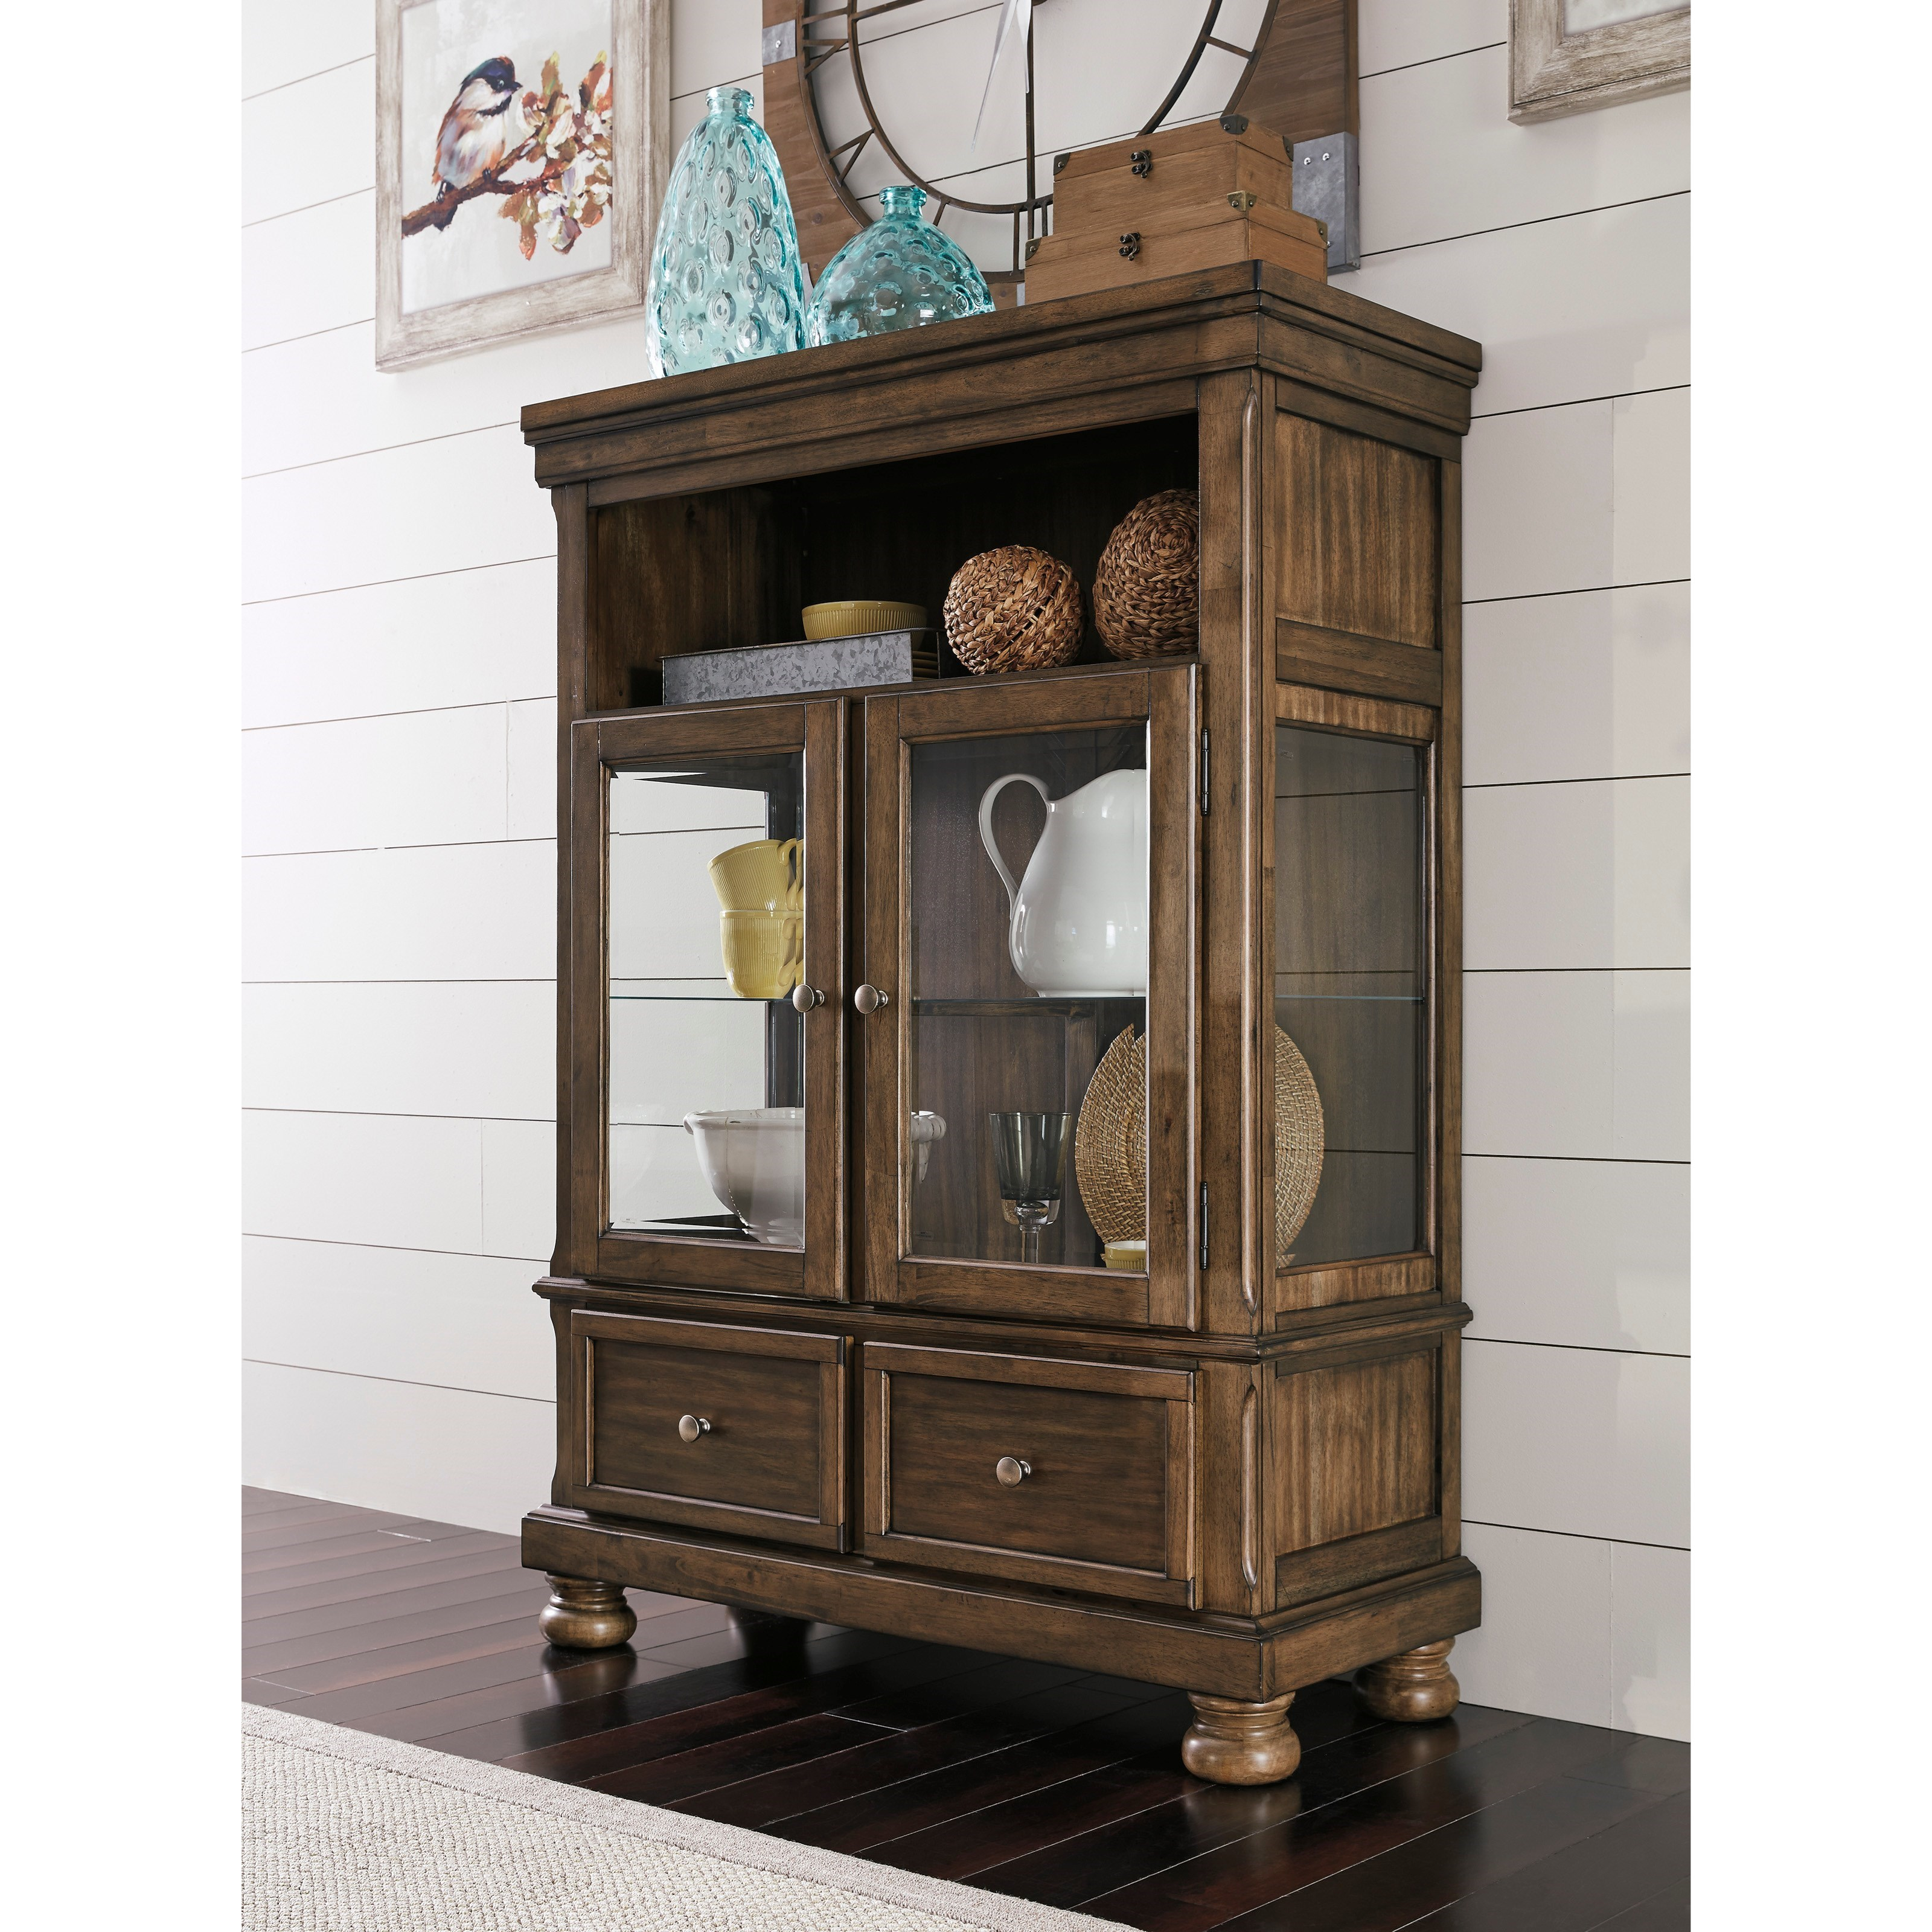 Ashley S Nest Decorating A Dining Room: Signature Design By Ashley Flynnter D719-86 Dining Curio